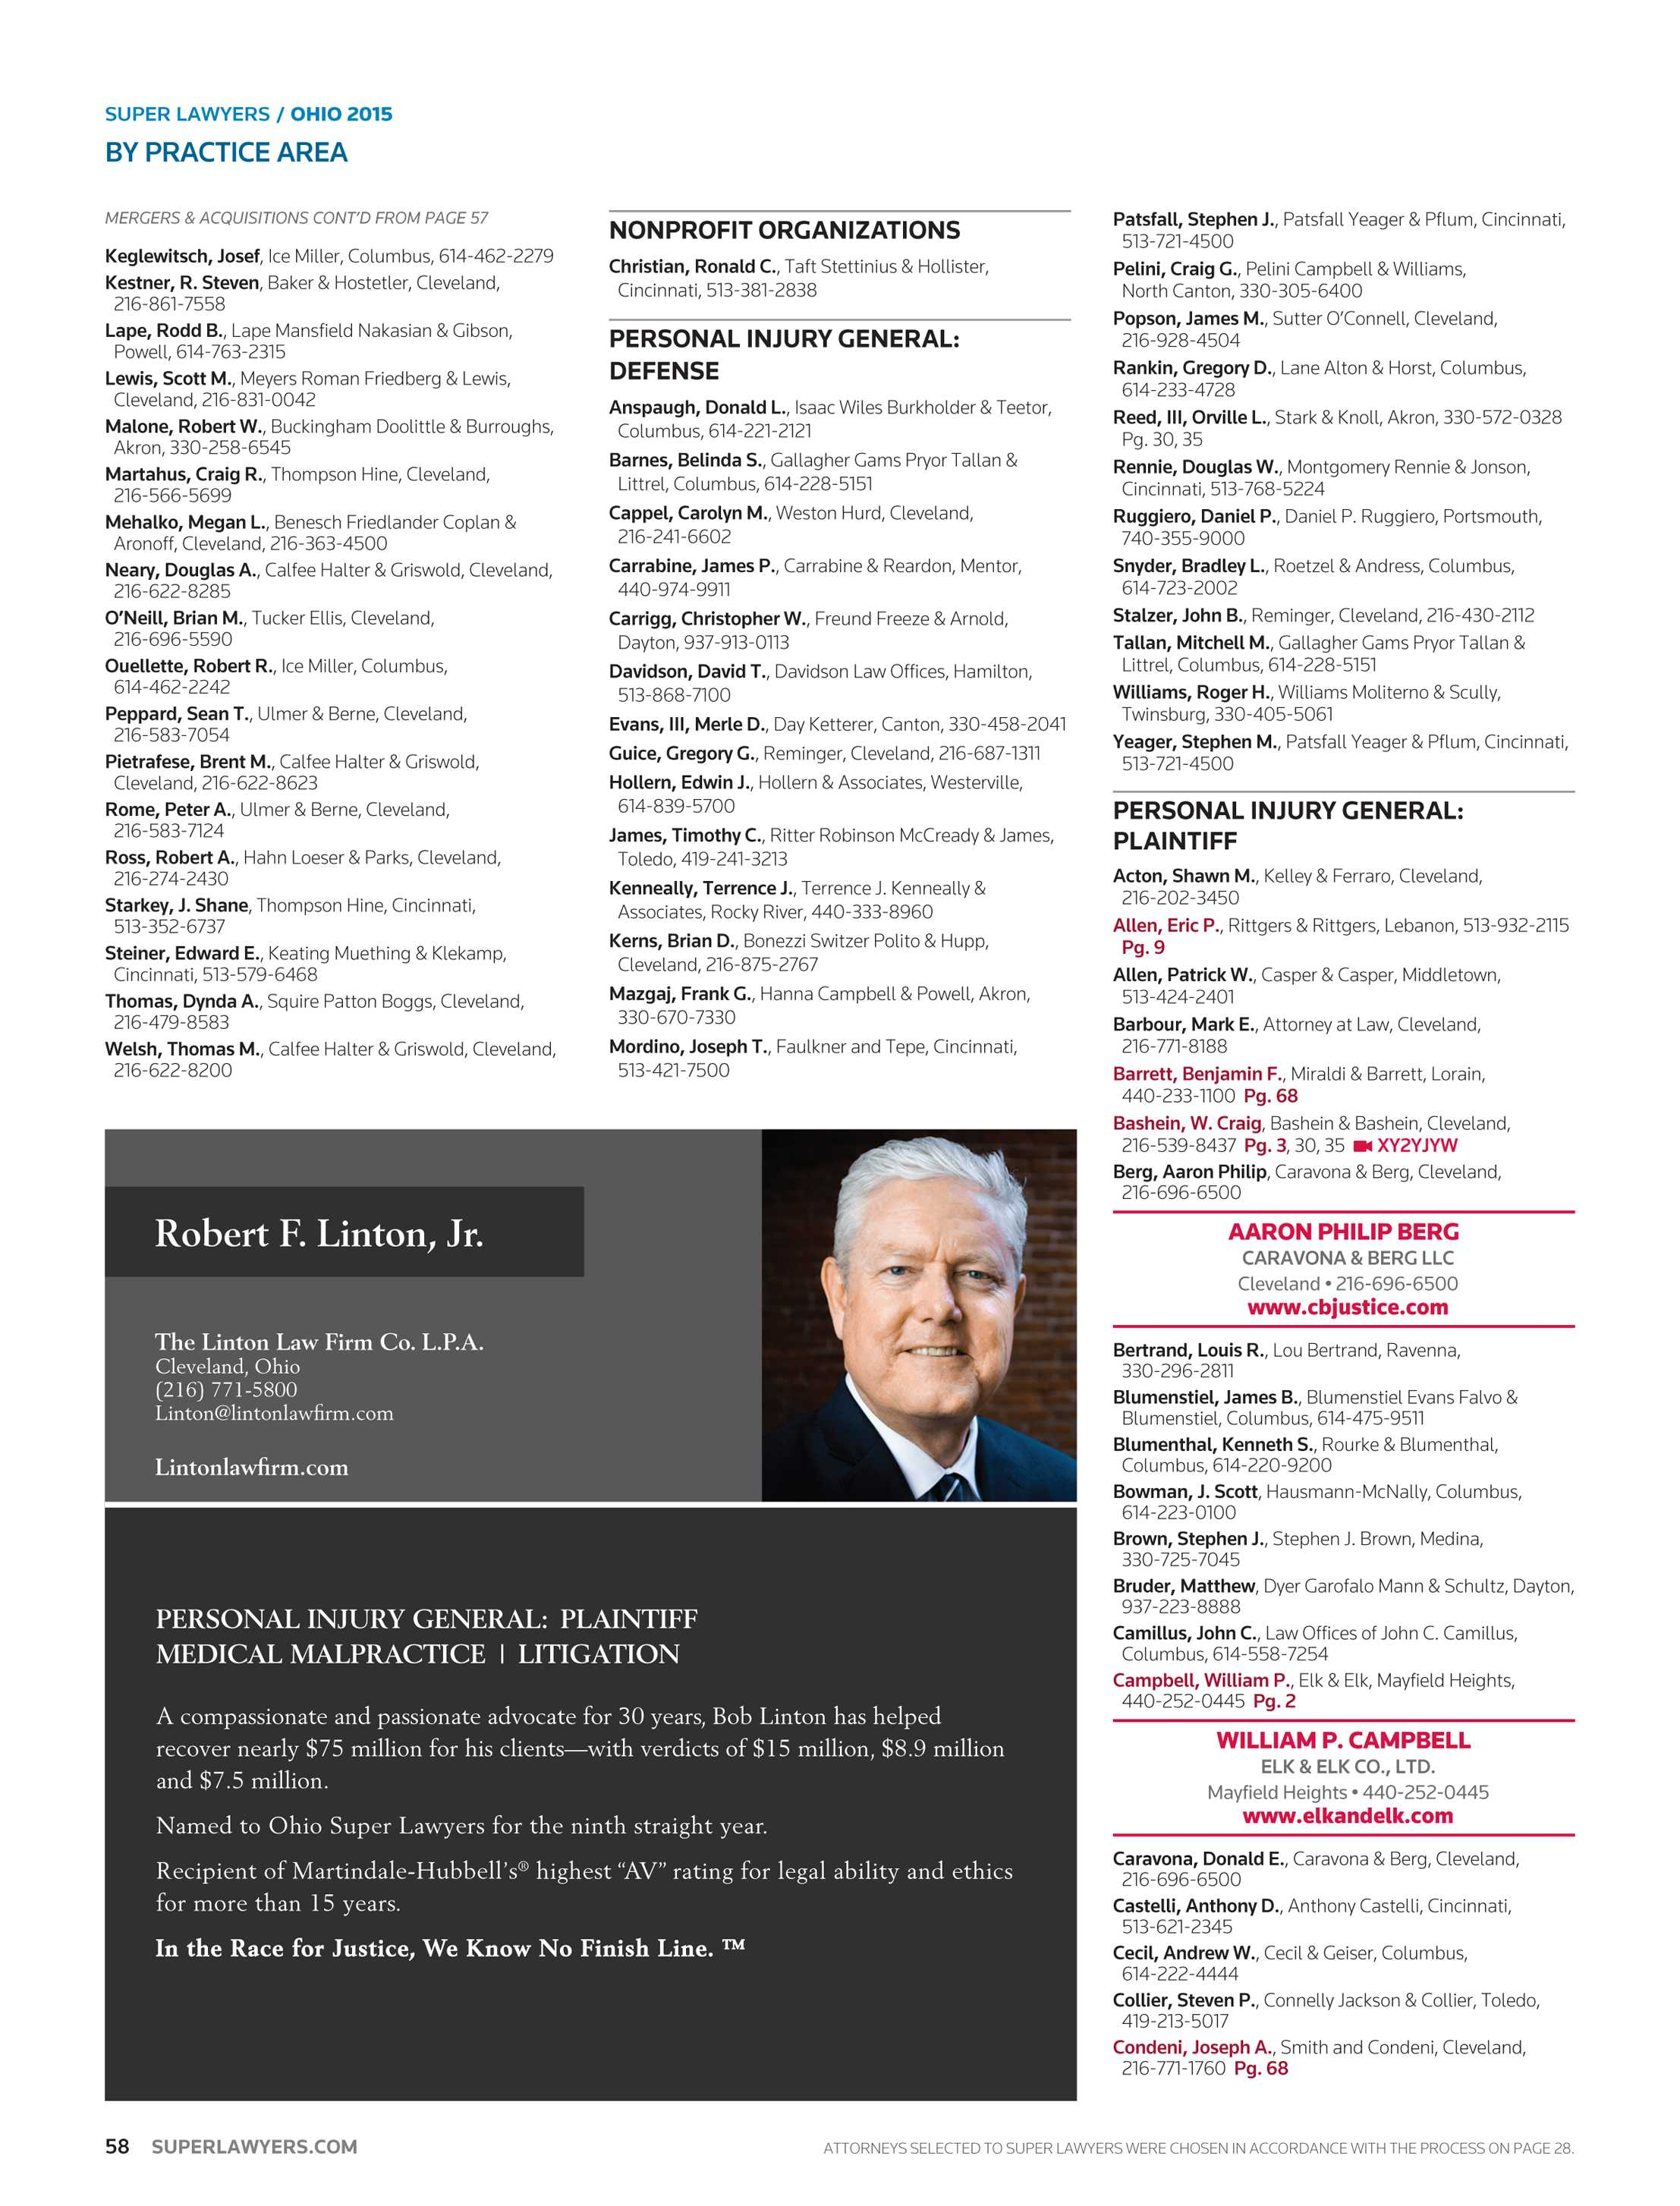 Super Lawyers - Illinois 2017 - page 58